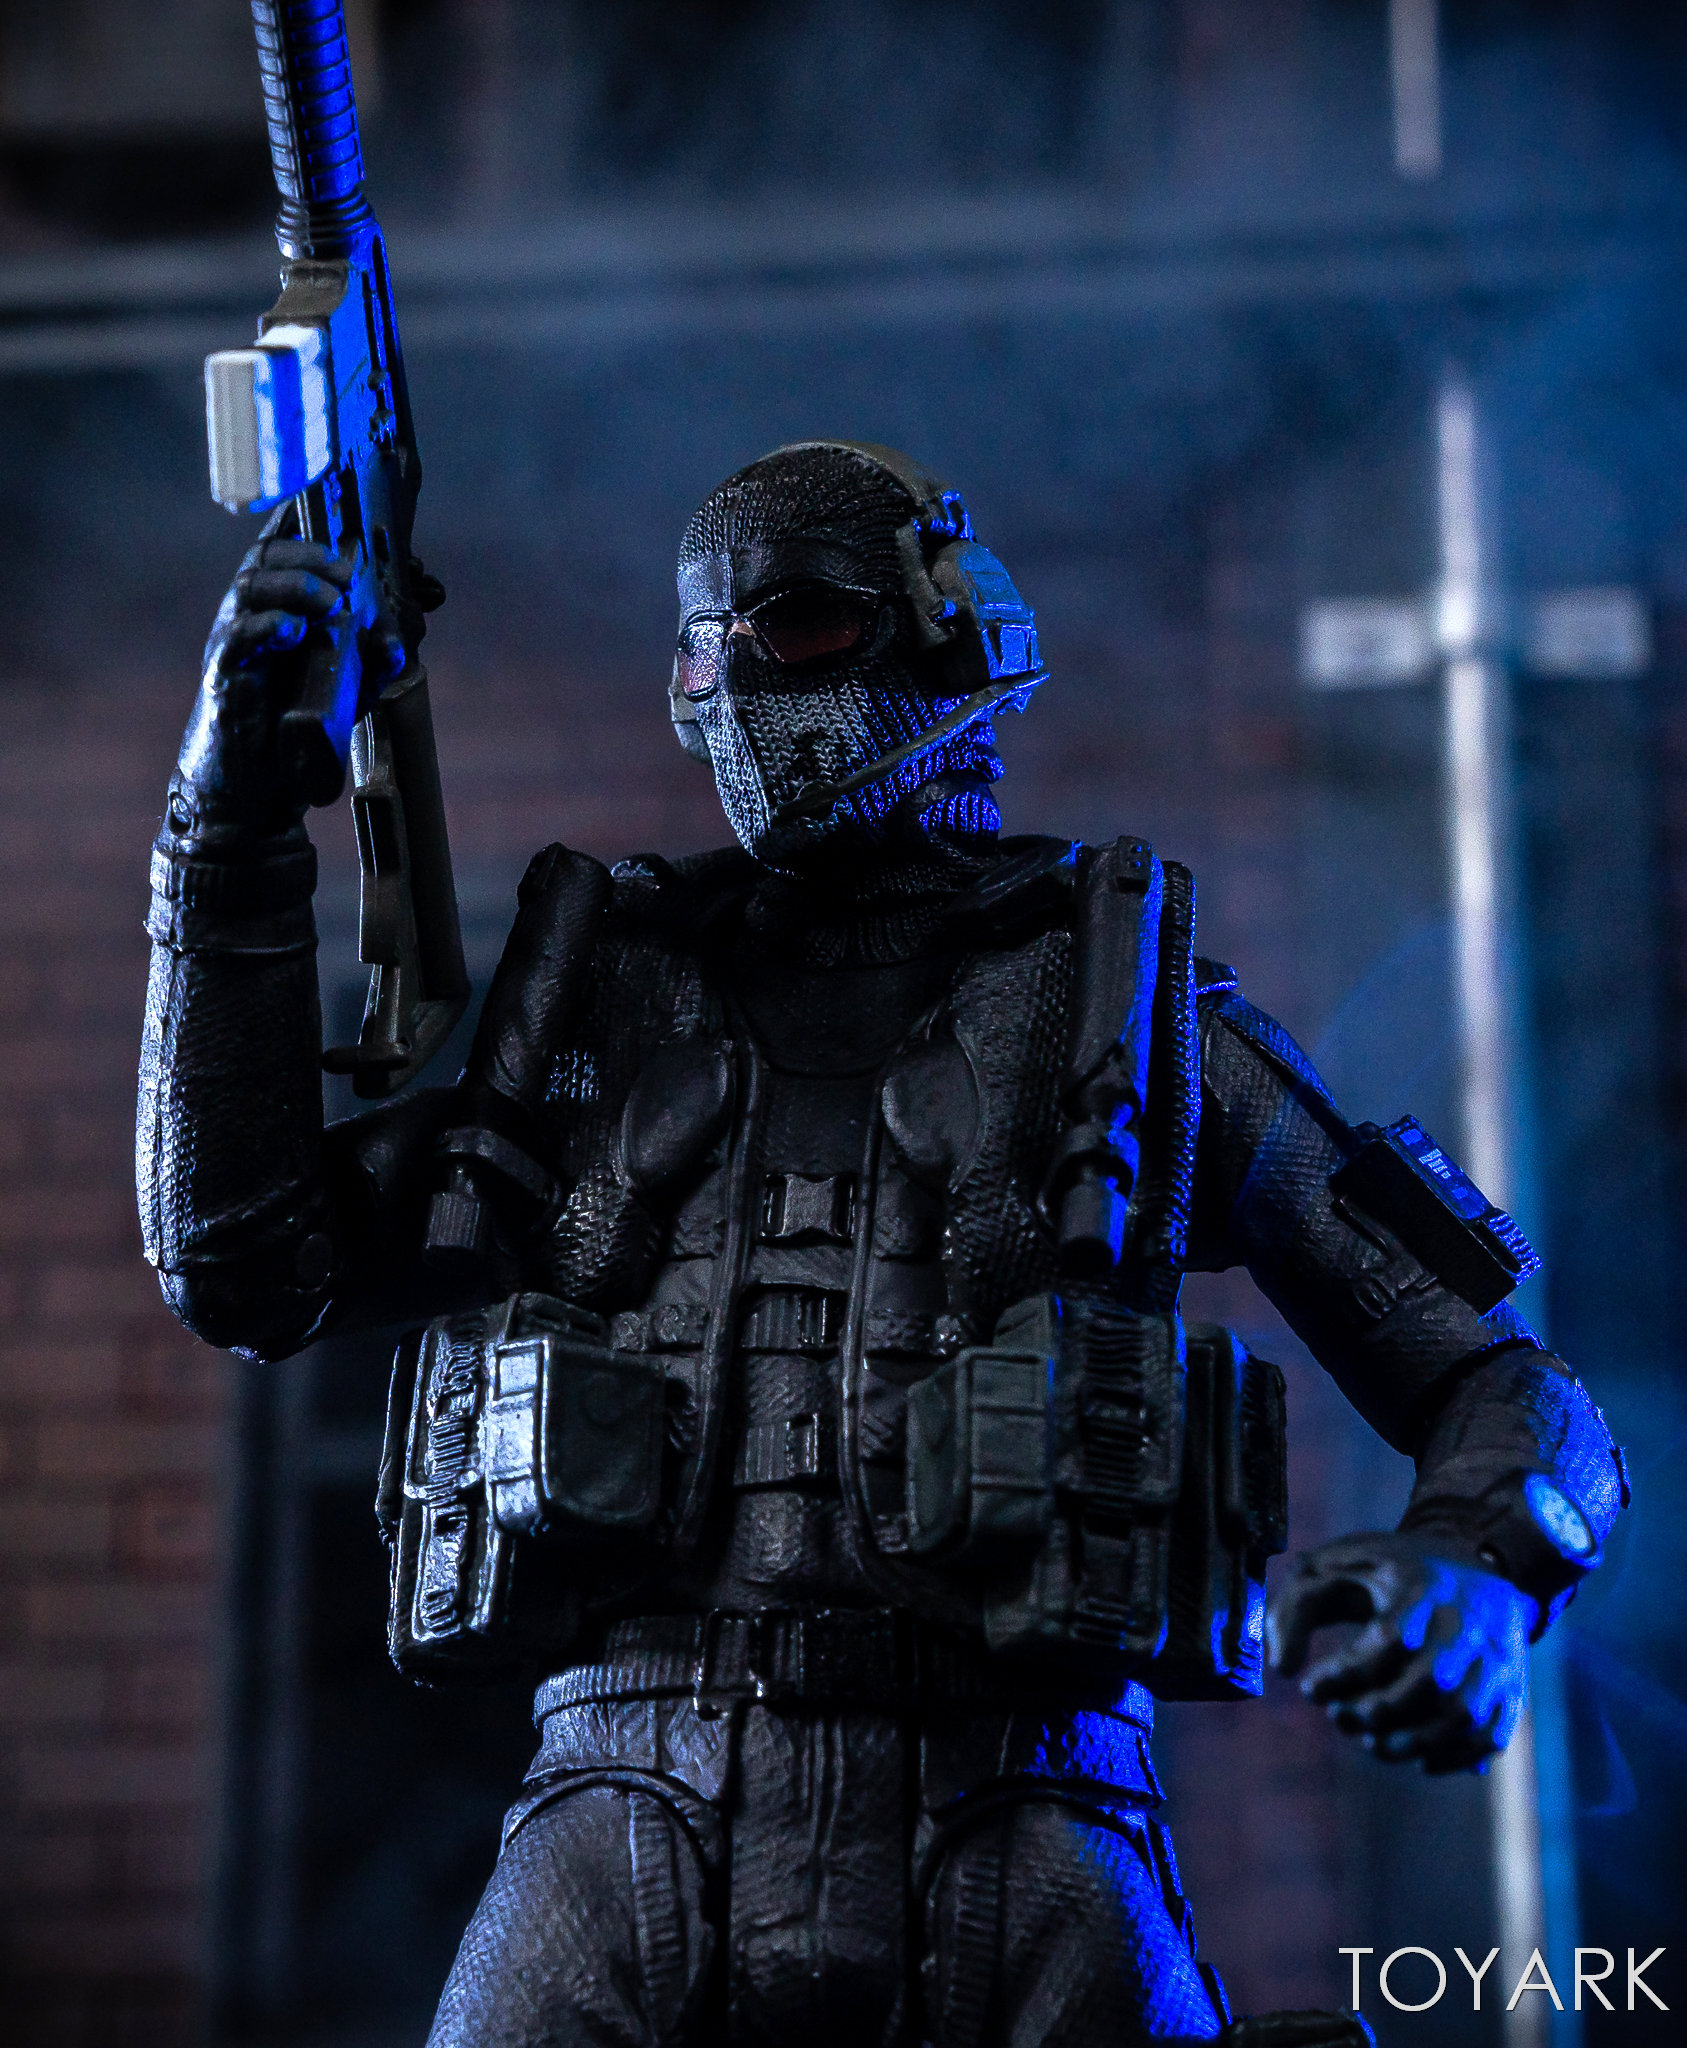 https://news.toyark.com/wp-content/uploads/sites/4/2019/01/Call-of-Duty-Wave-1-McFarlane-021.jpg